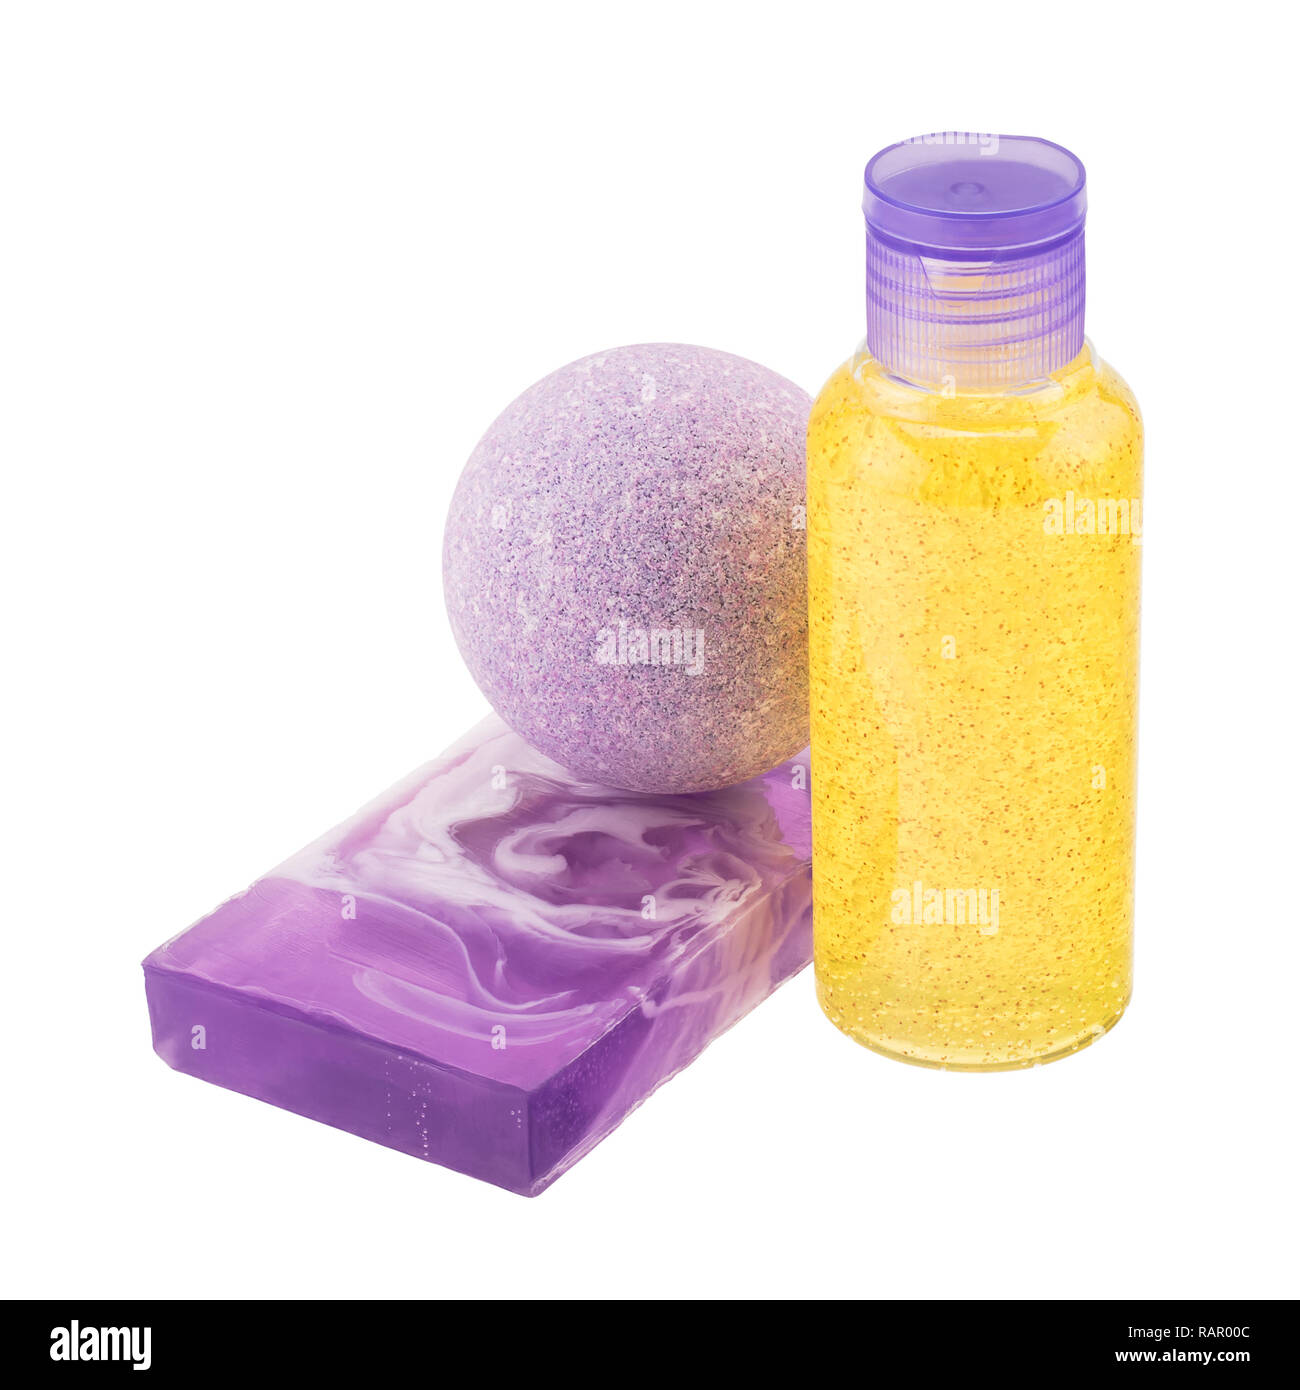 Composition of cosmetic products - bath bomb, handmade soap, bottle with scrub - Stock Image